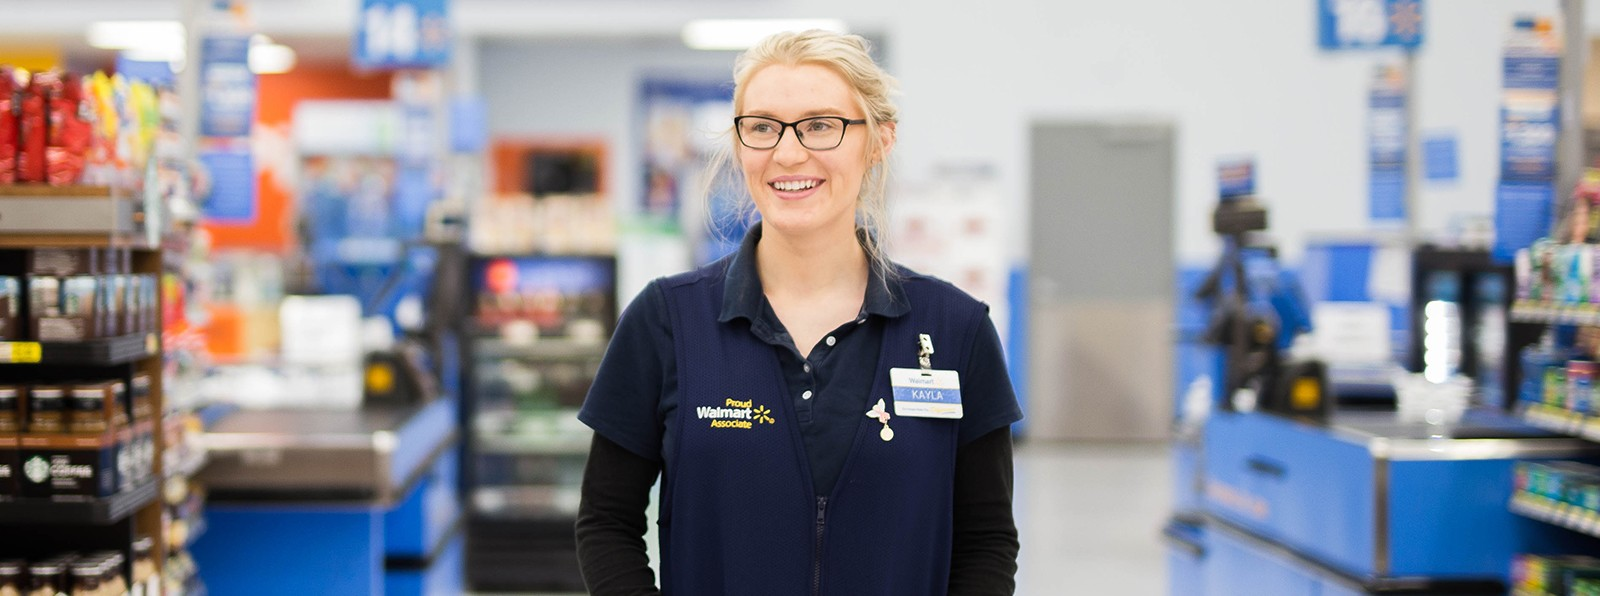 walmart com careers - Stocking Jobs At Walmart